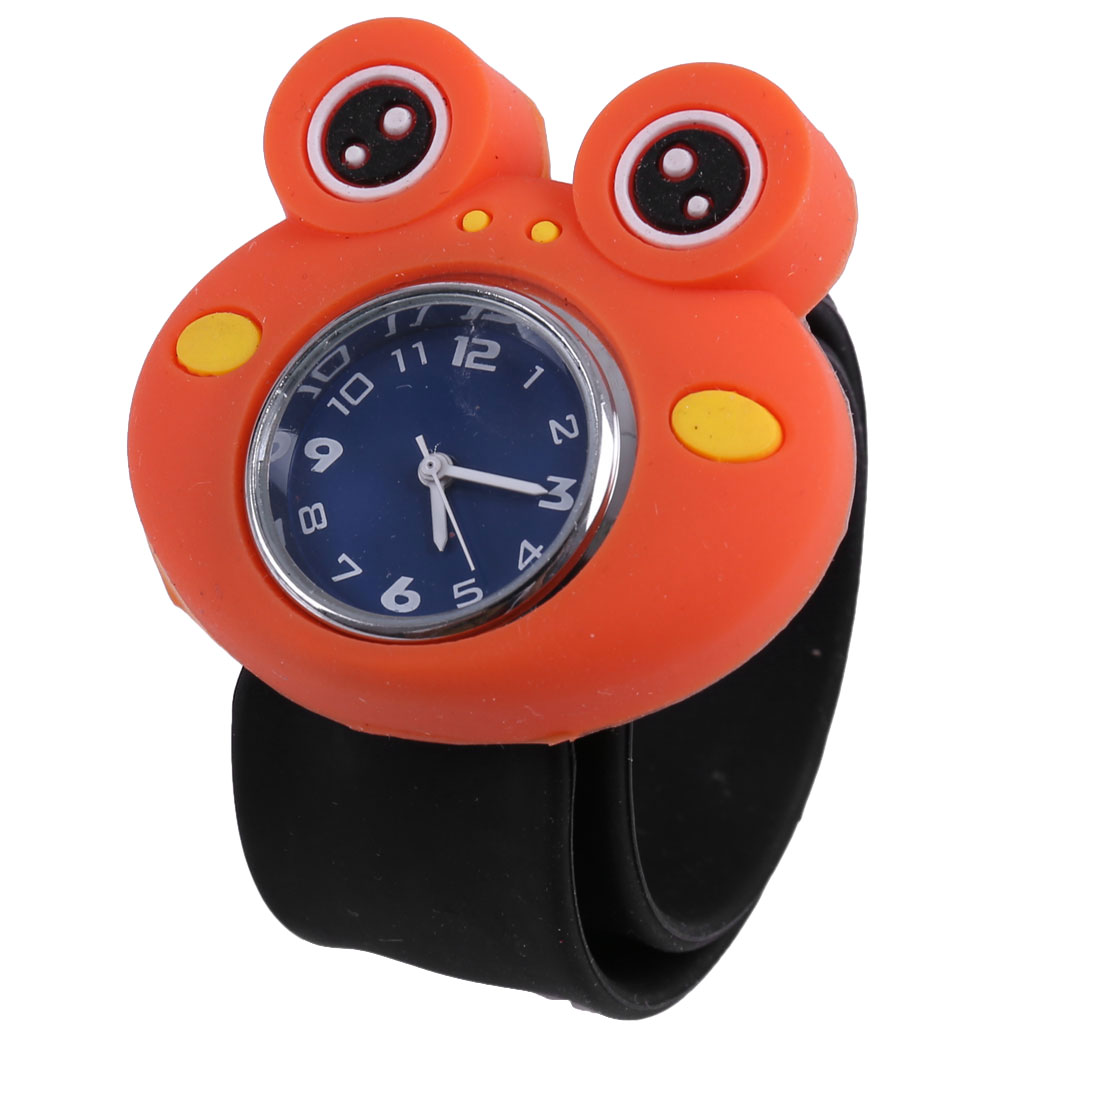 Cute Frog Adjustable Strap Wrist Watch for Children Blue Black